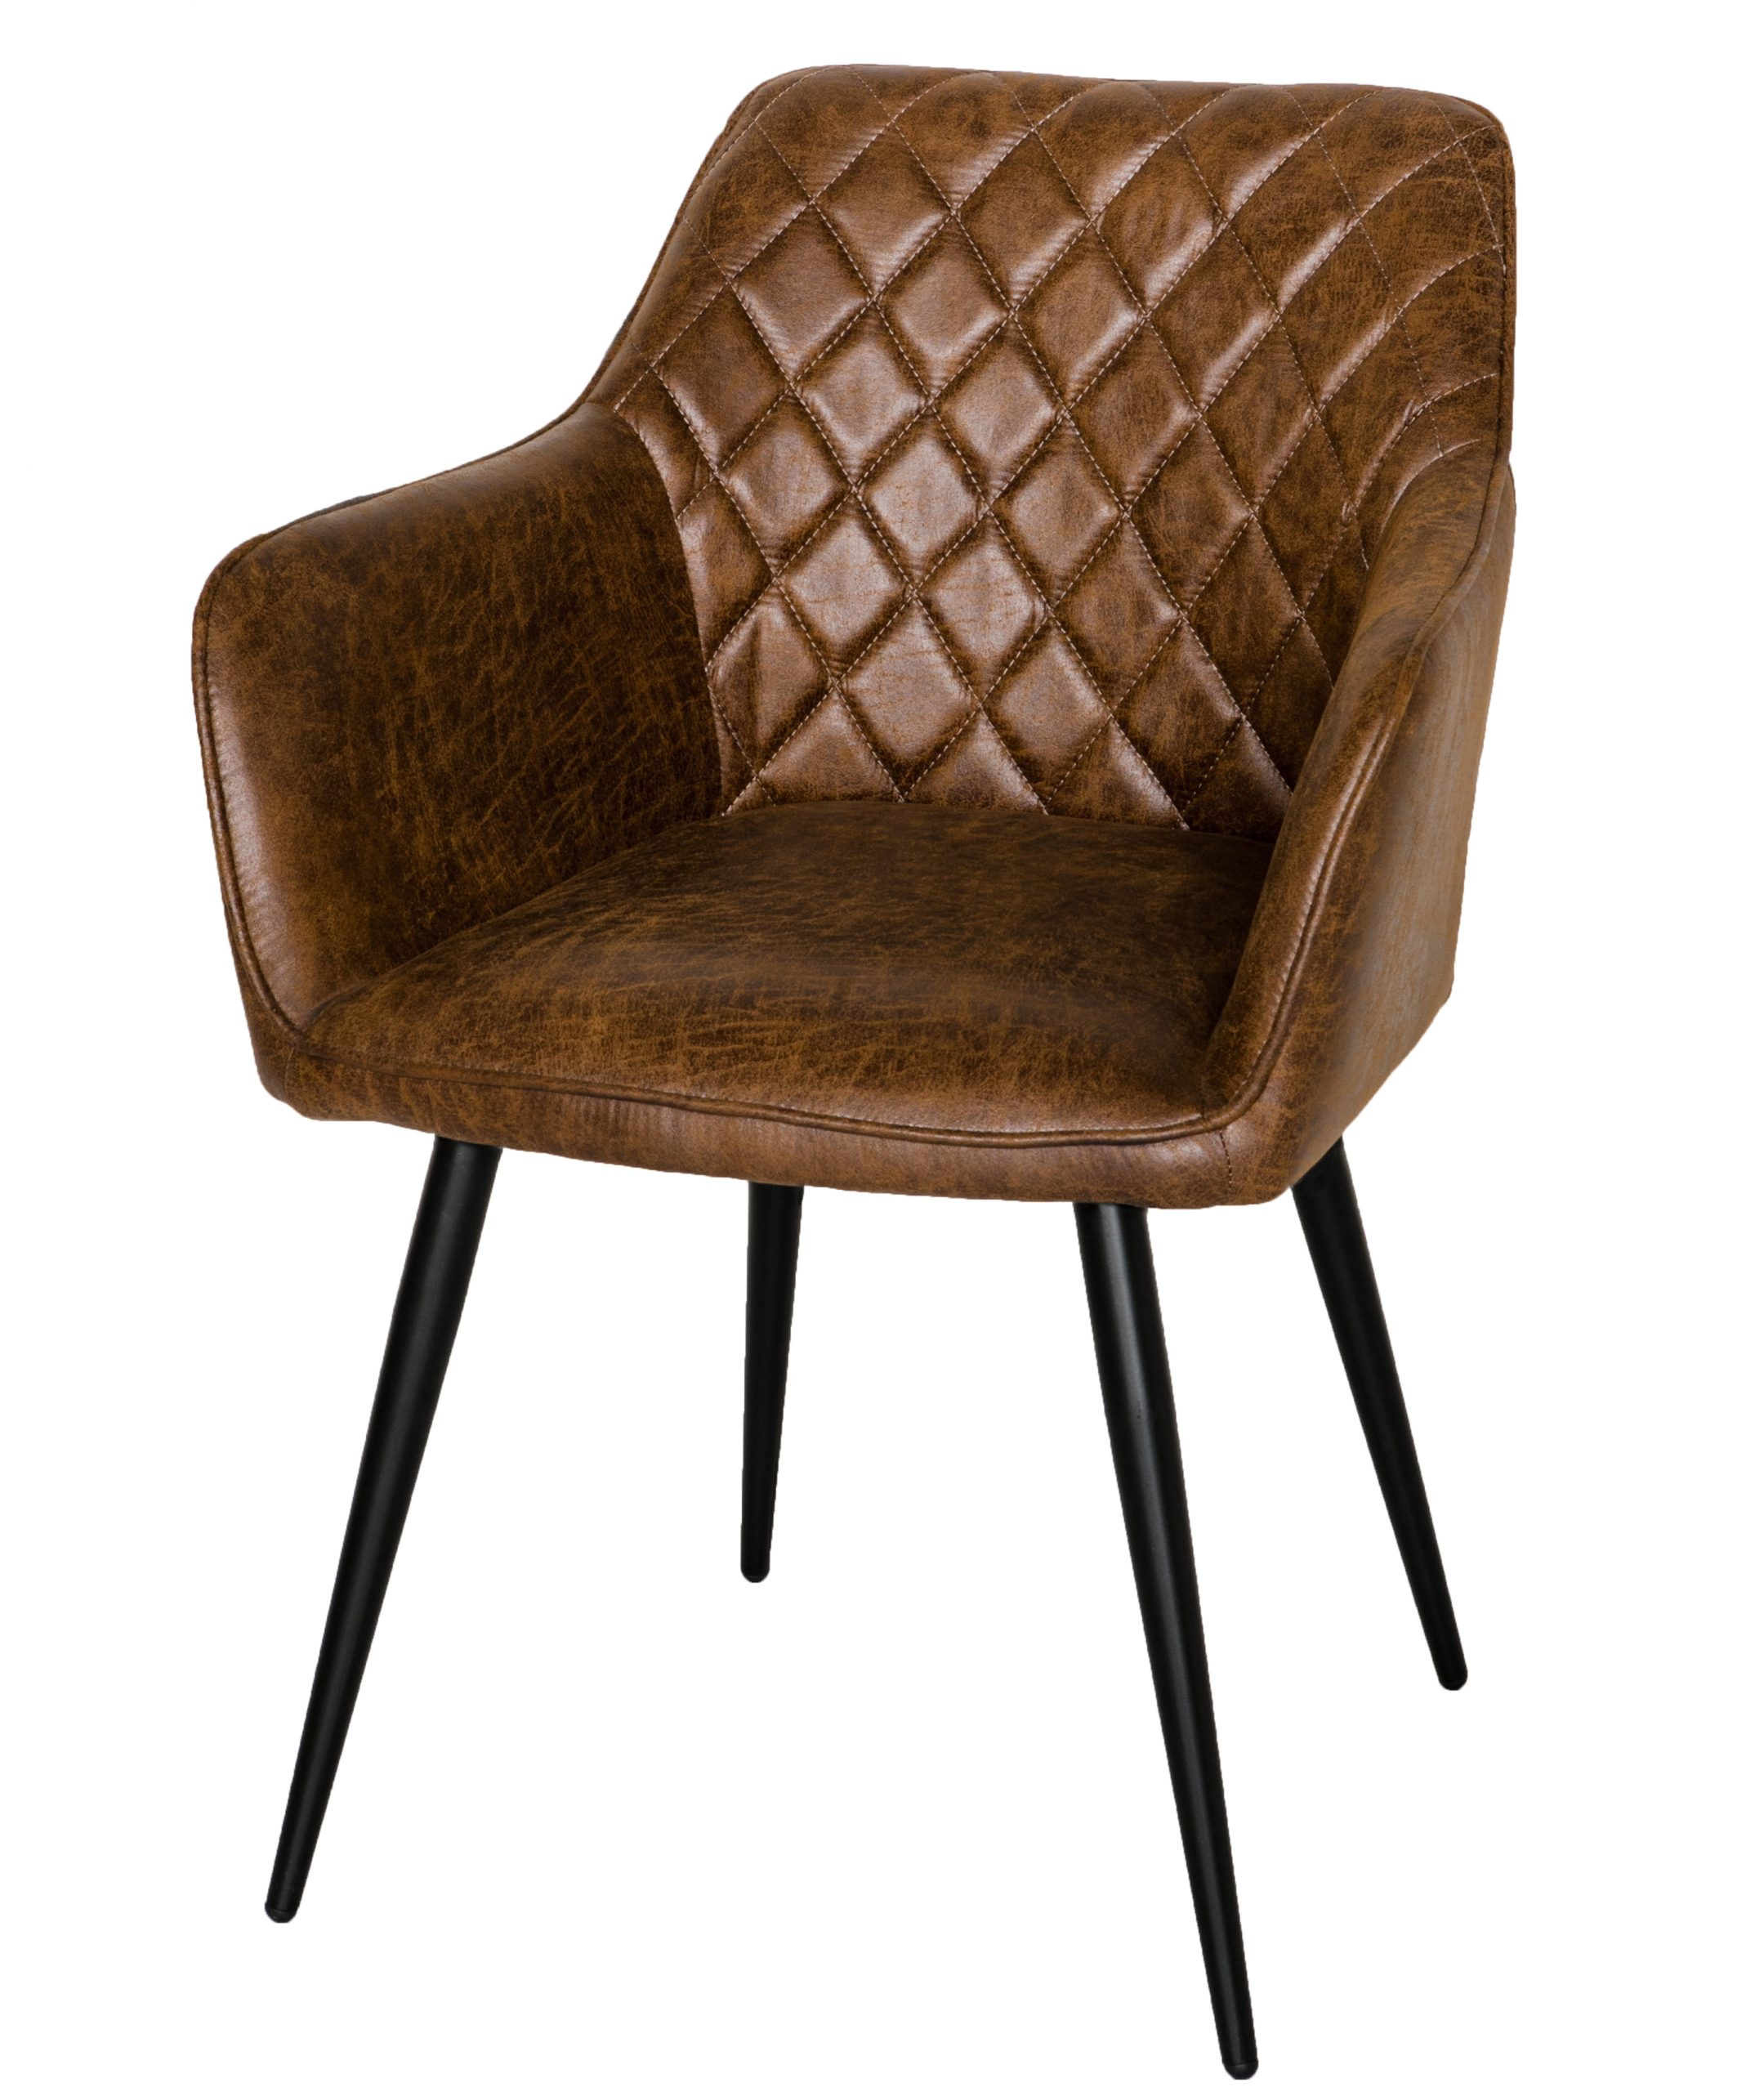 Harley Vintage brown leather carver dining chair